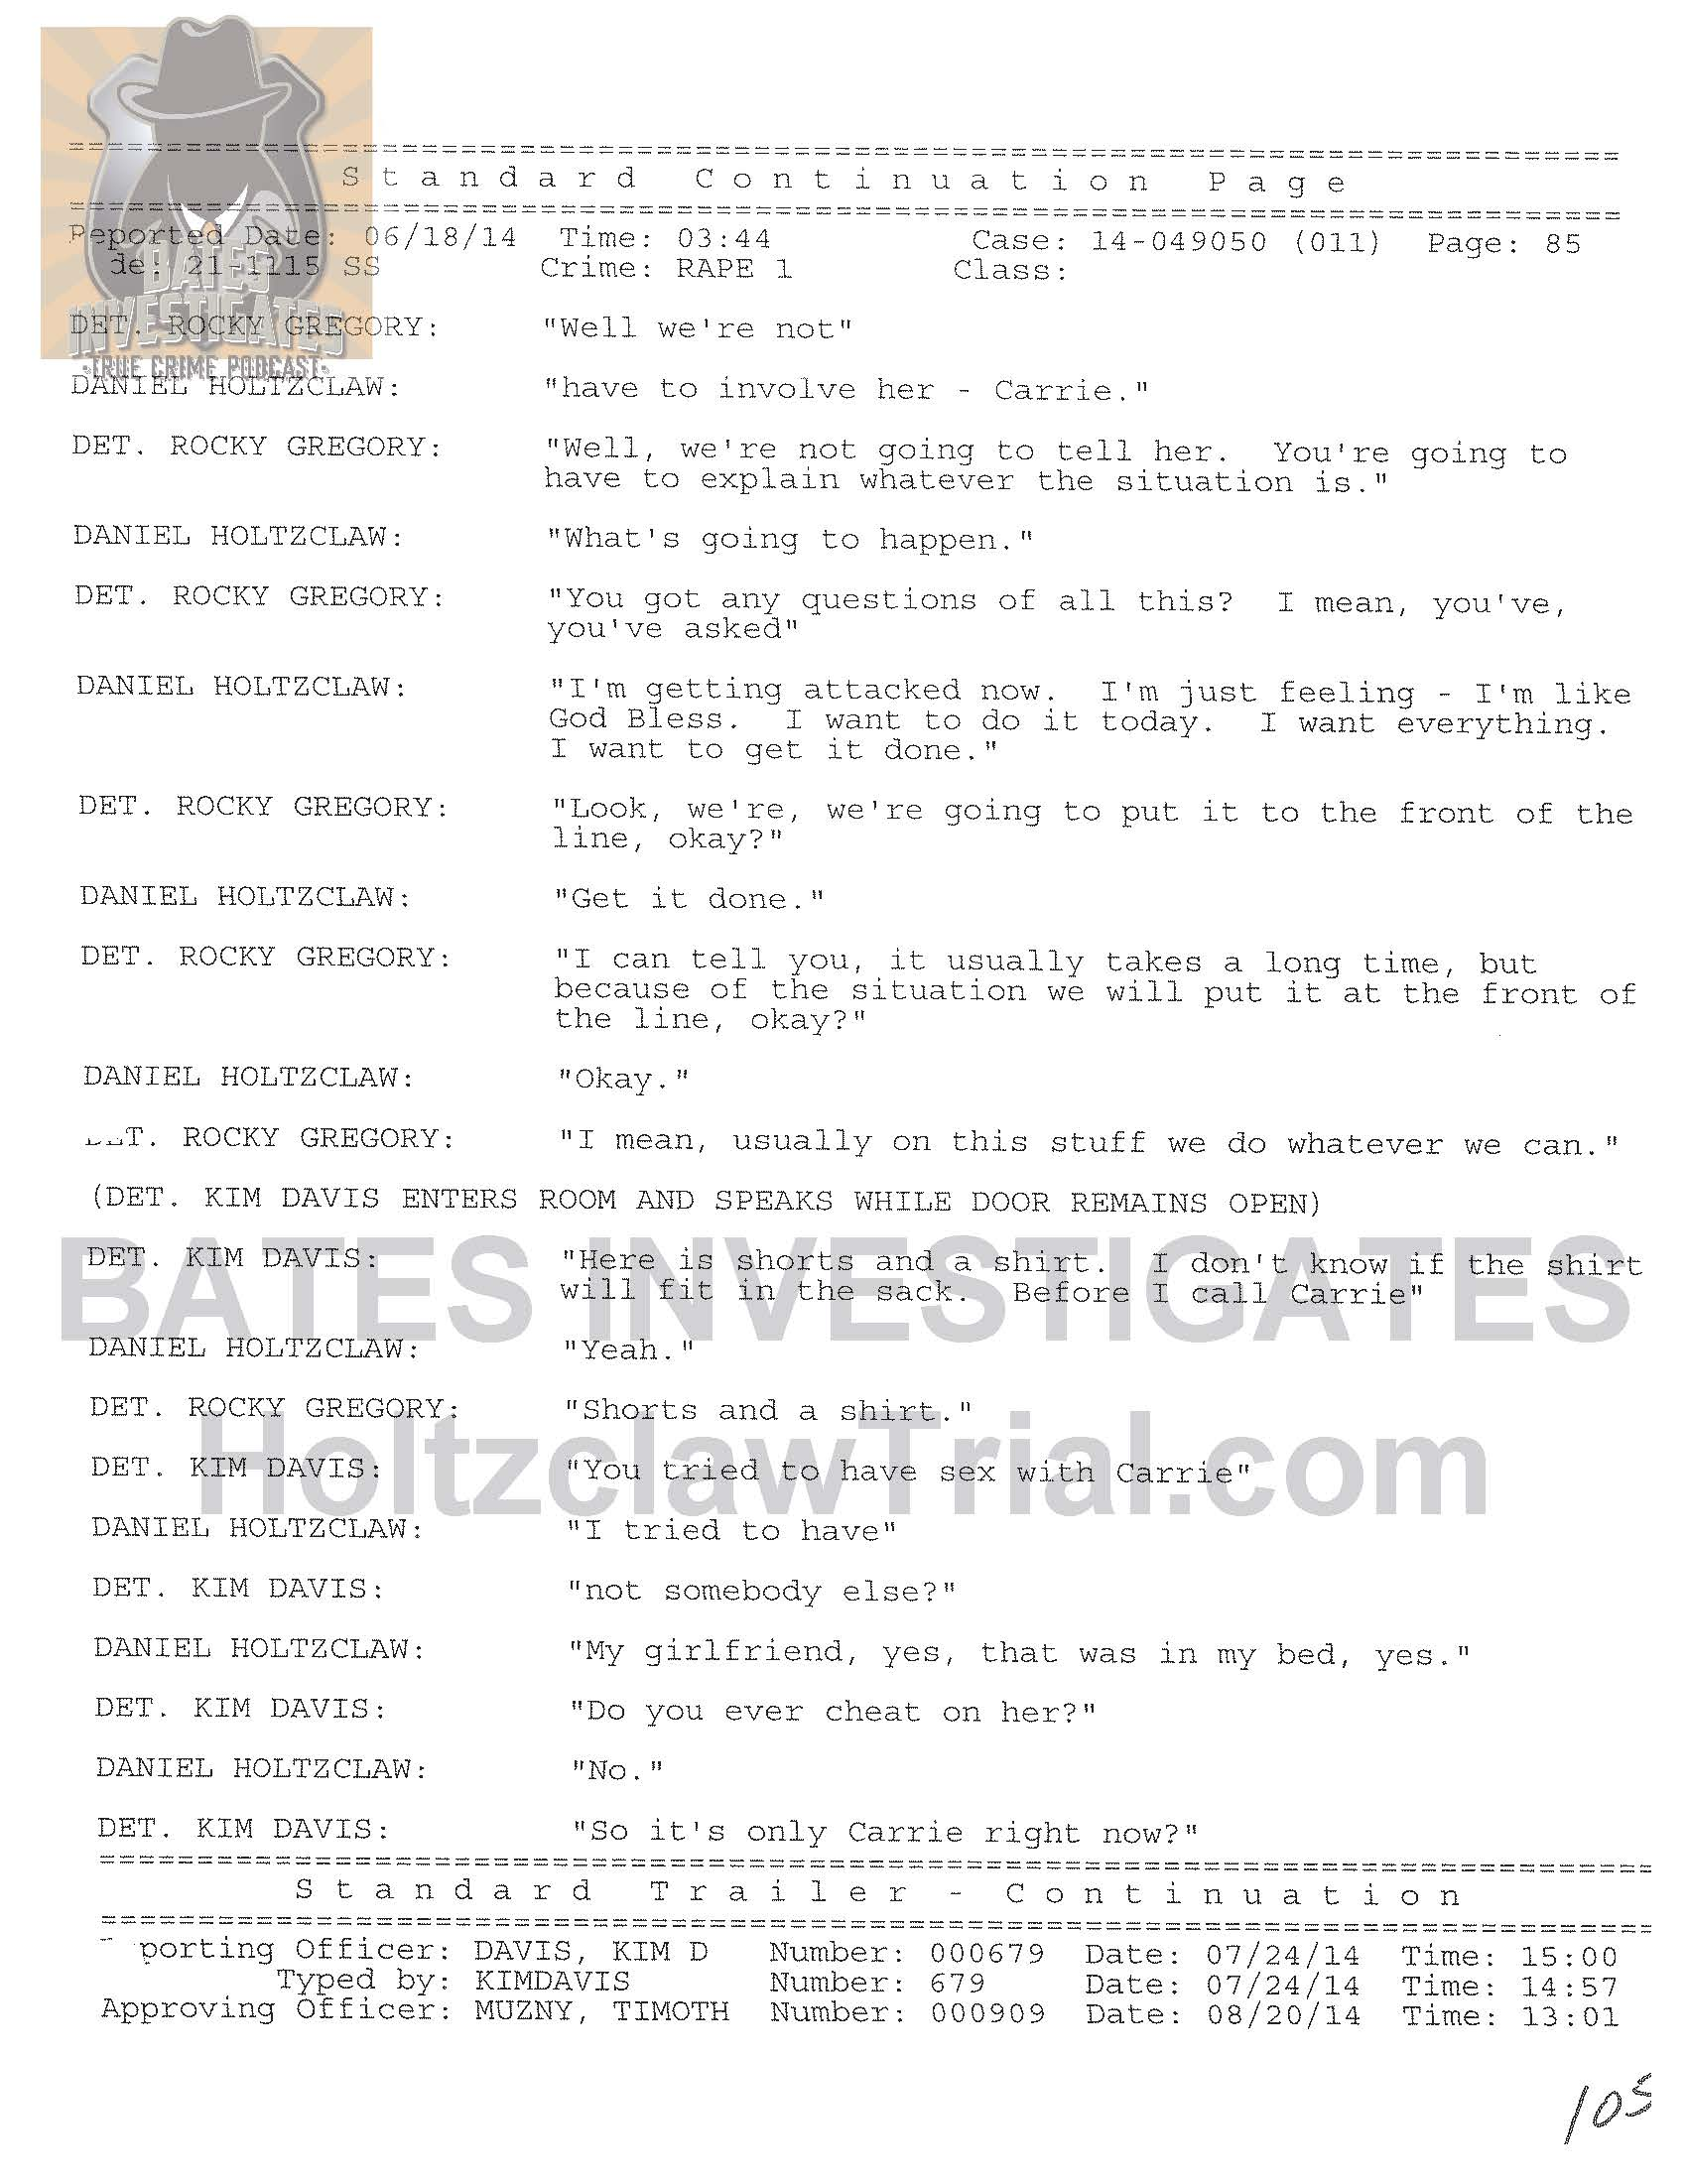 Holtzclaw Interrogation Transcript - Ep02 Redacted_Page_85.jpg